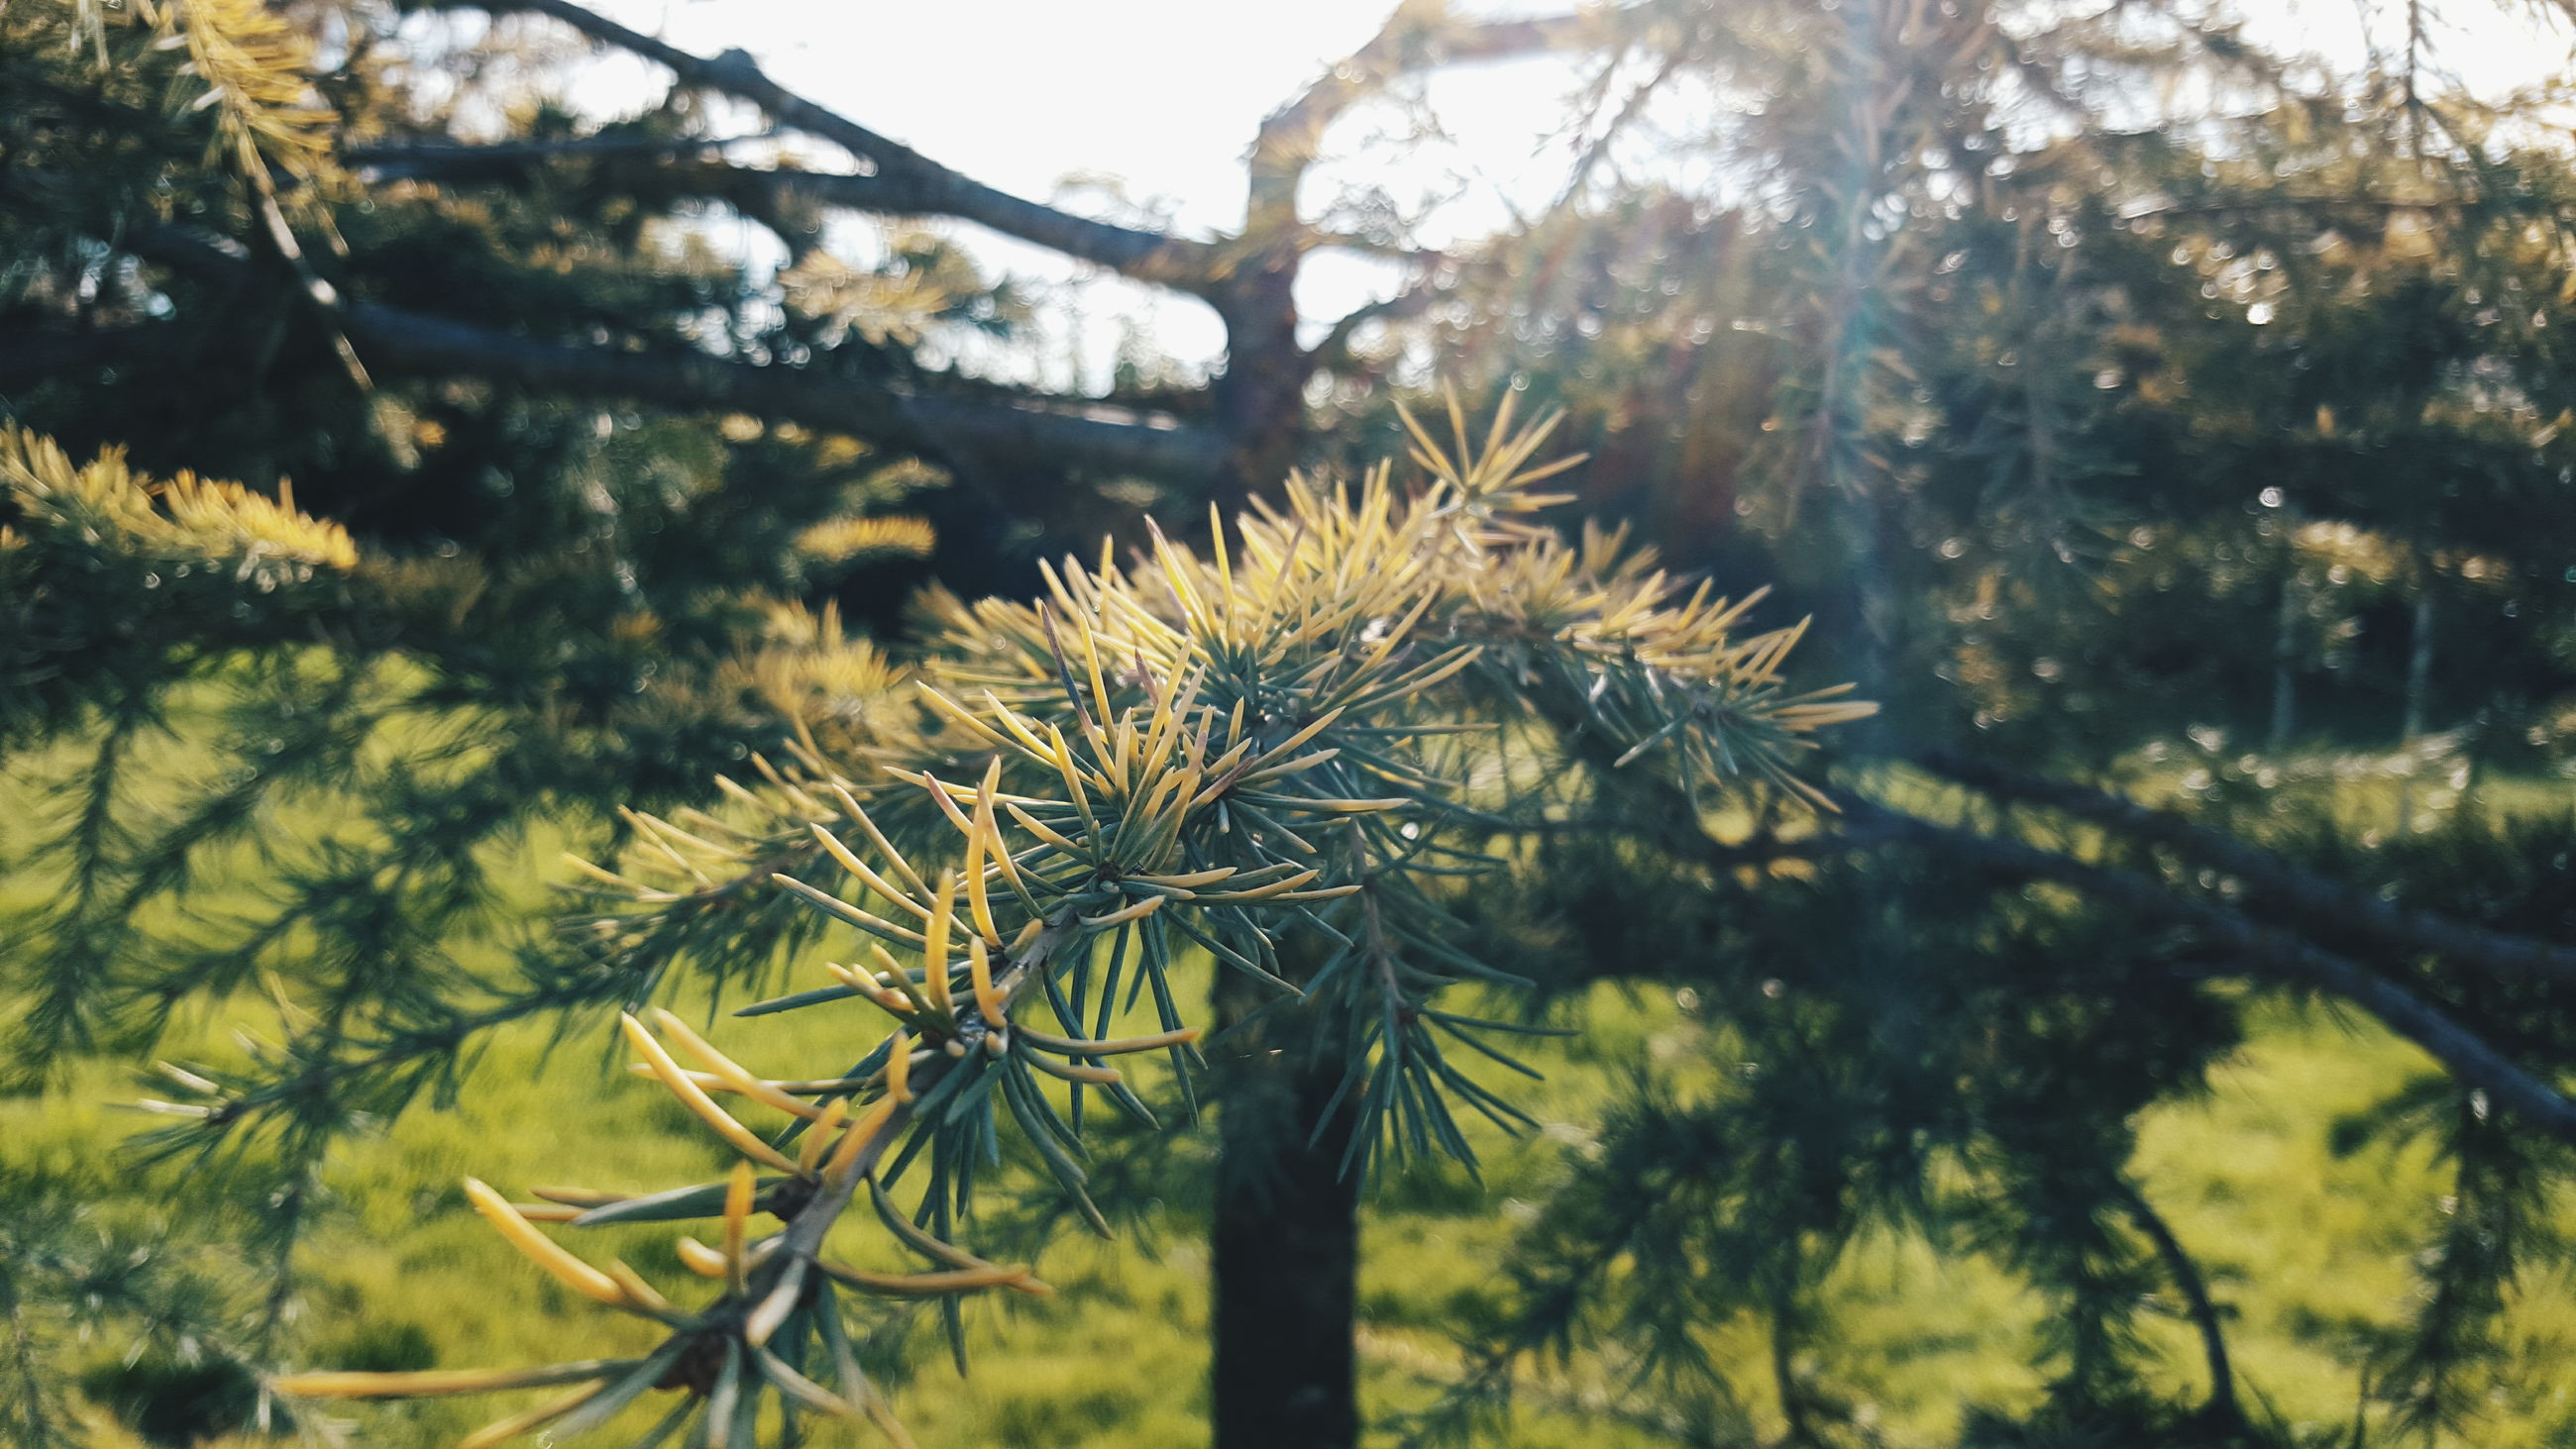 nature, growth, no people, sunlight, outdoors, day, green color, beauty in nature, plant, low angle view, tree, close-up, sky